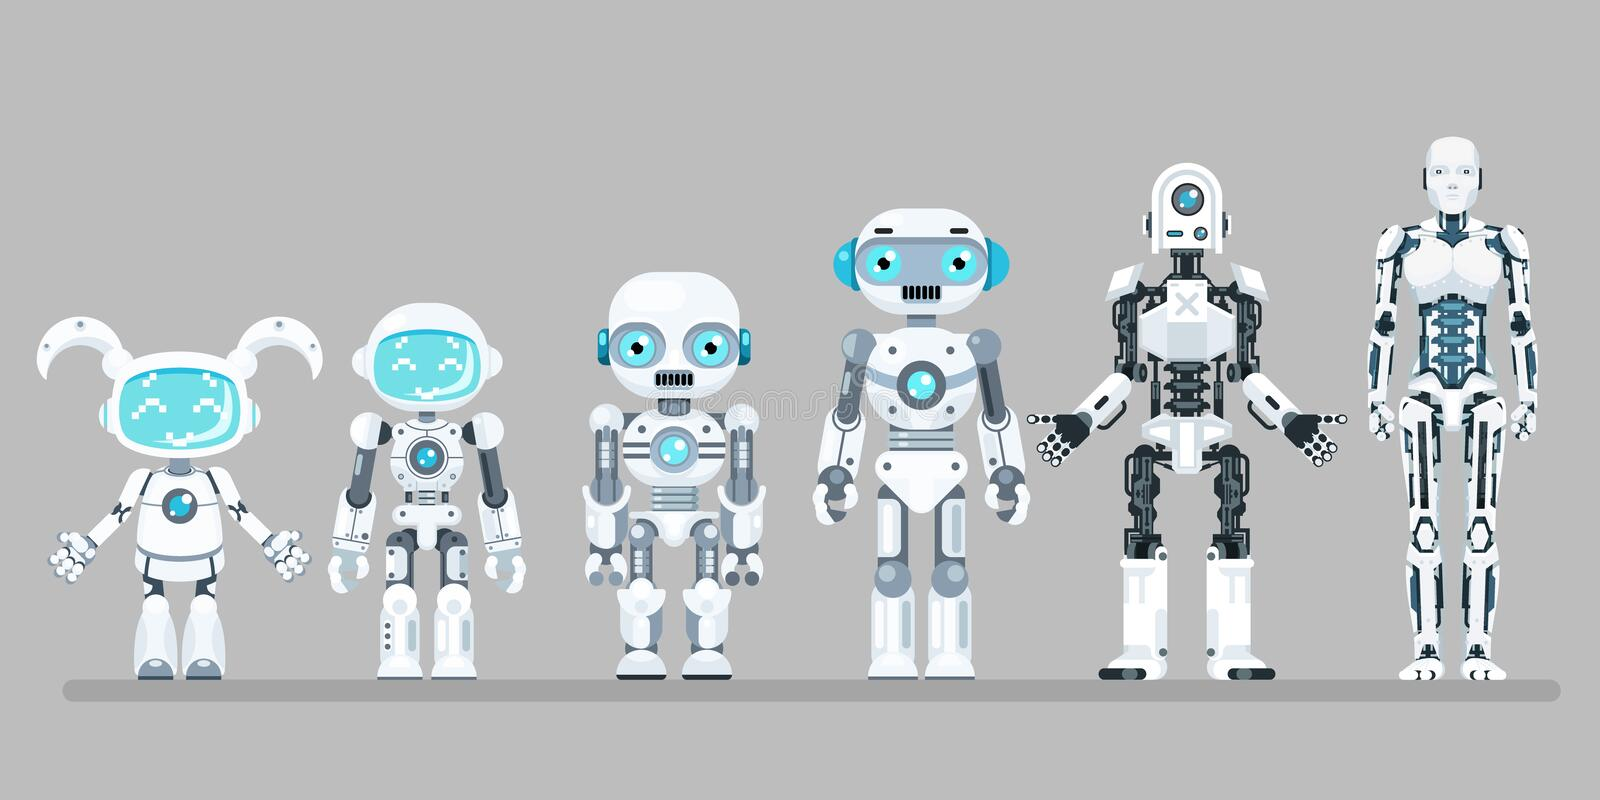 Robot android innovation technology science fiction future flat design icons set vector illustration. Robot android innovation science technology fiction future stock illustration